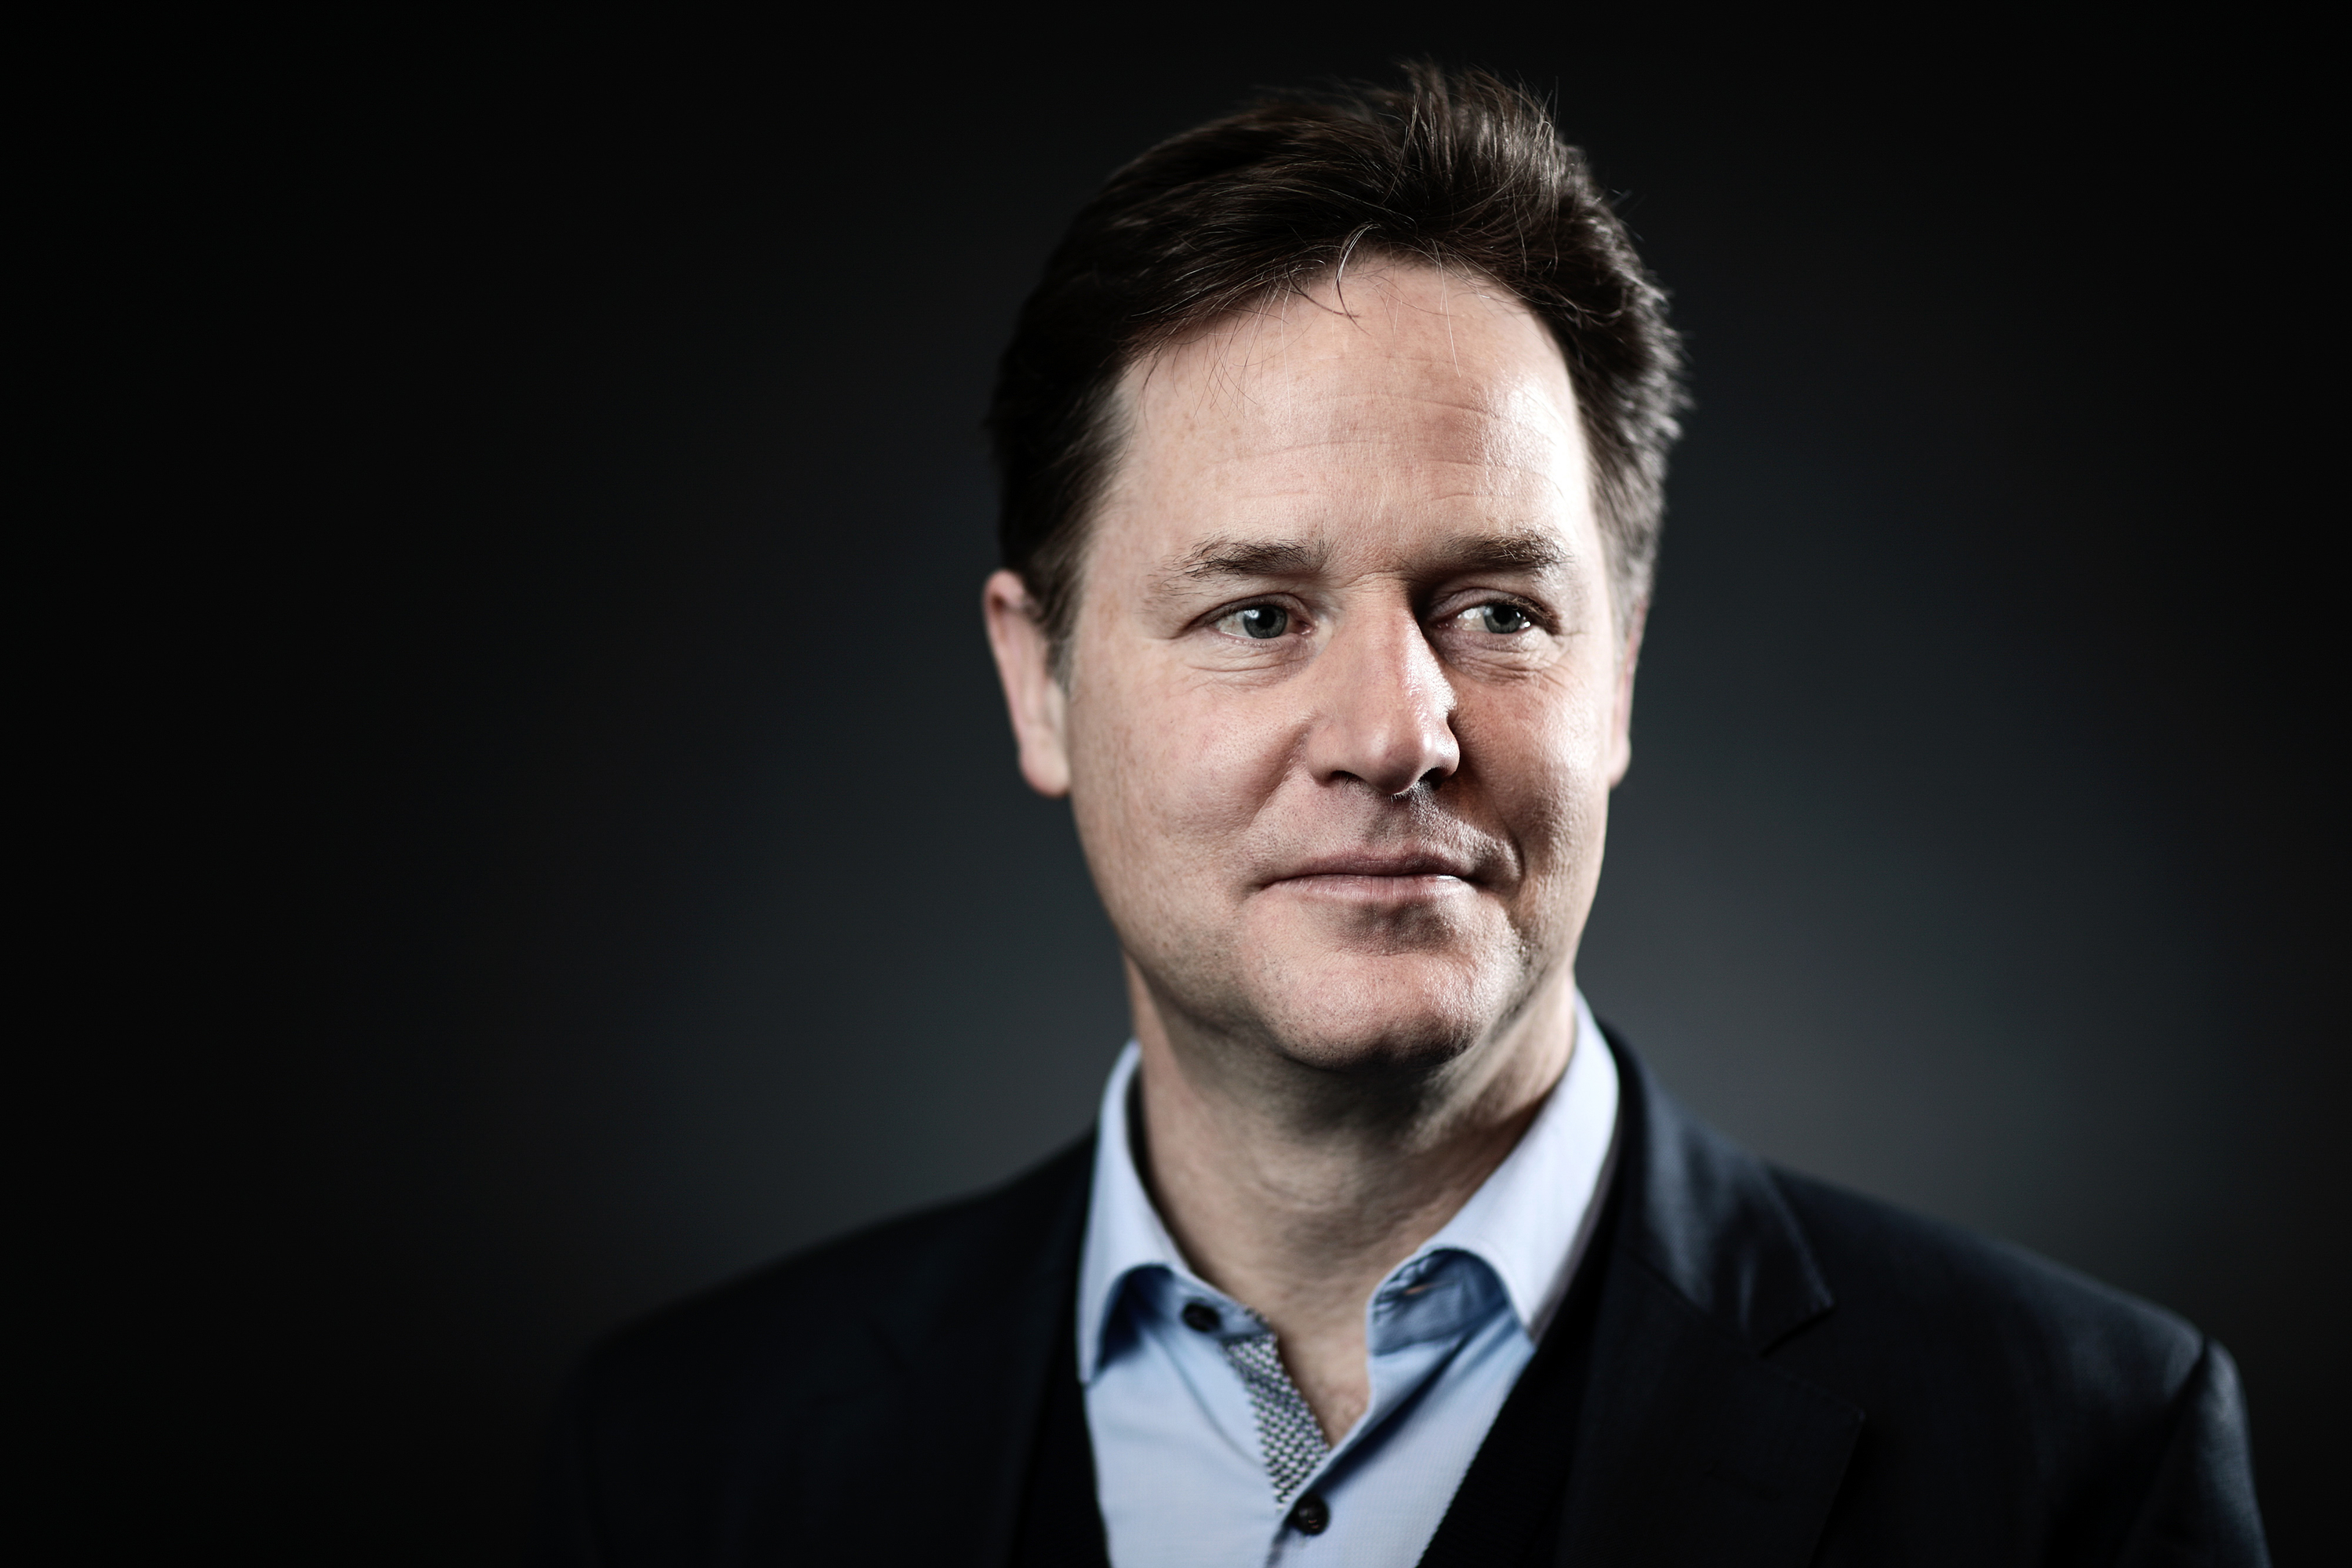 Facebook's Nick Clegg dismisses call by co-founder Chris Hughes to break up the company